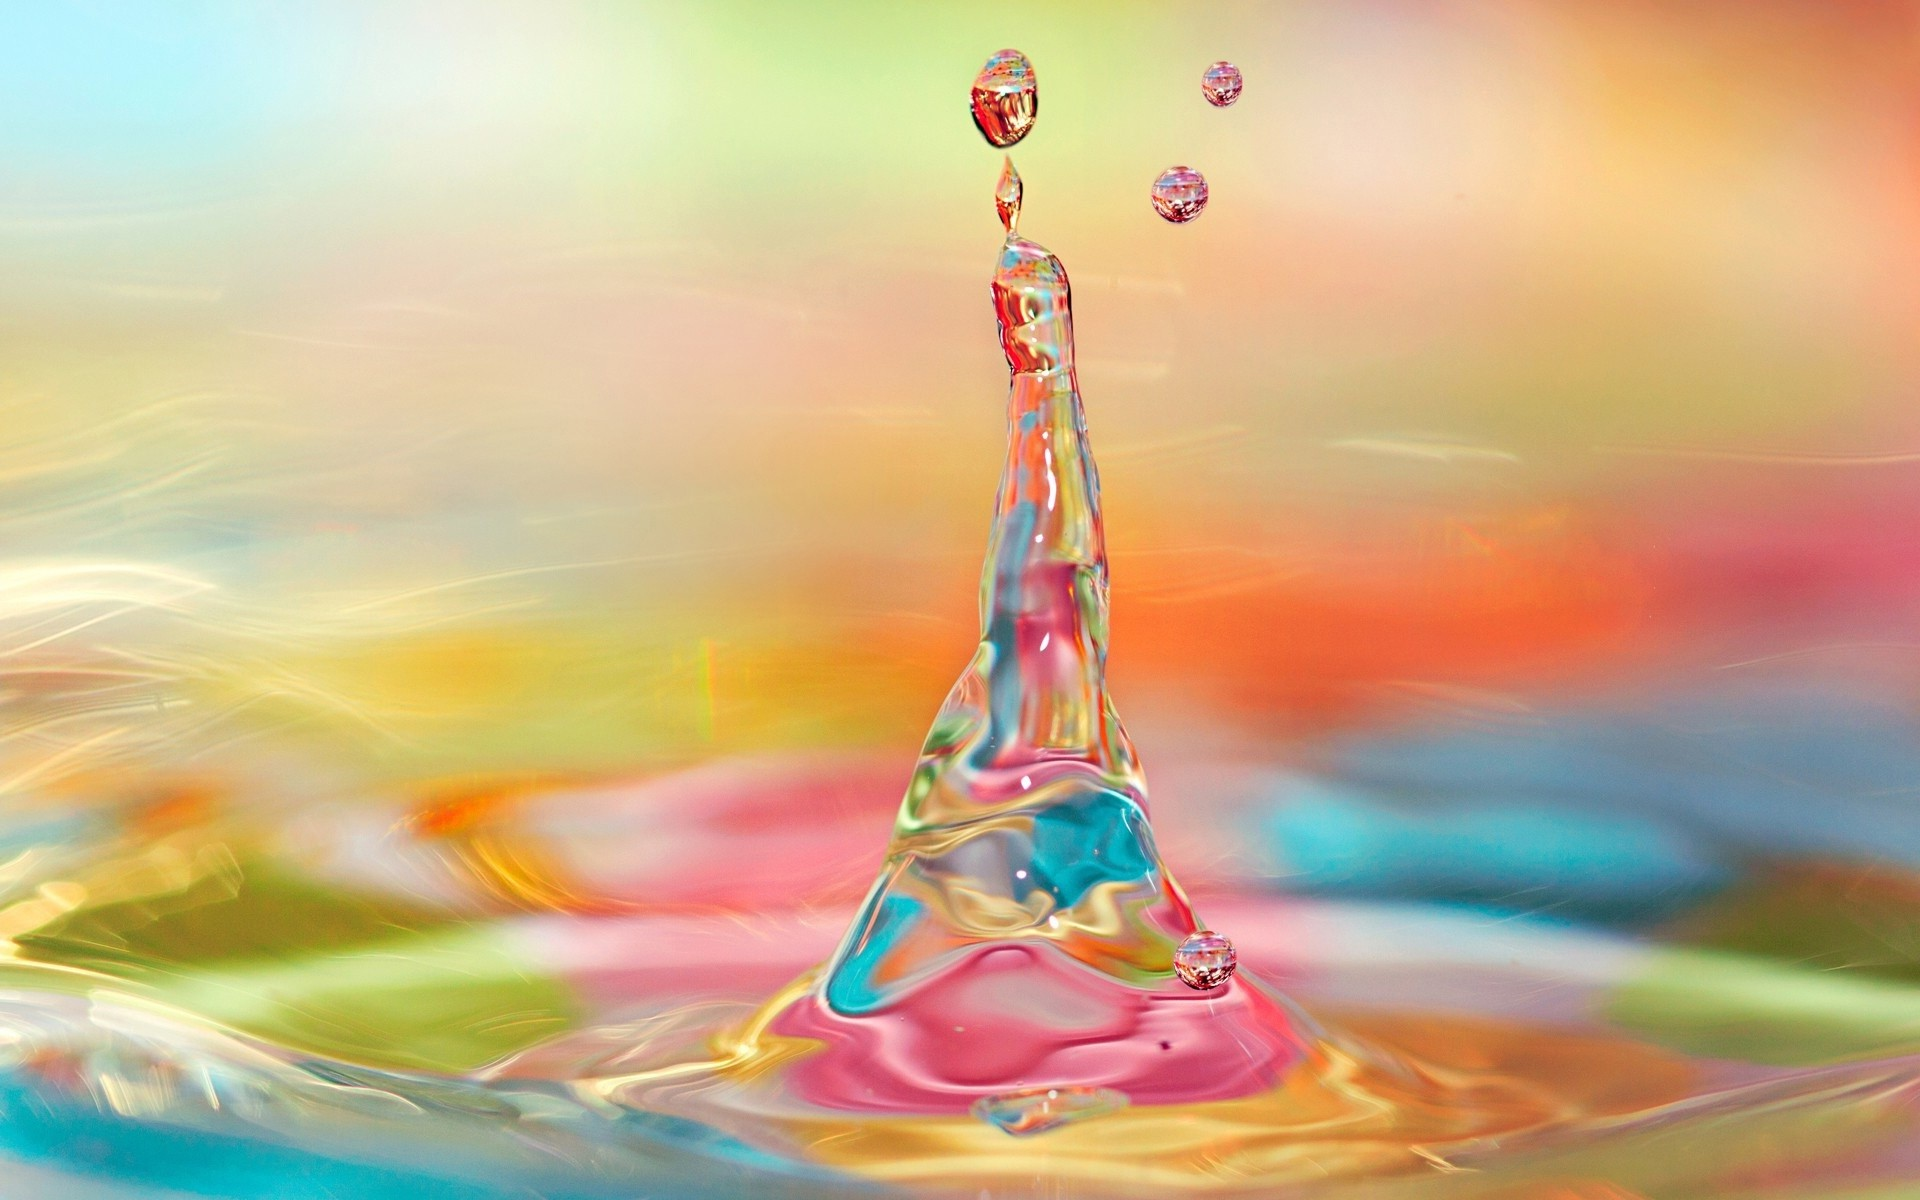 water droplets wallpaper 58 images